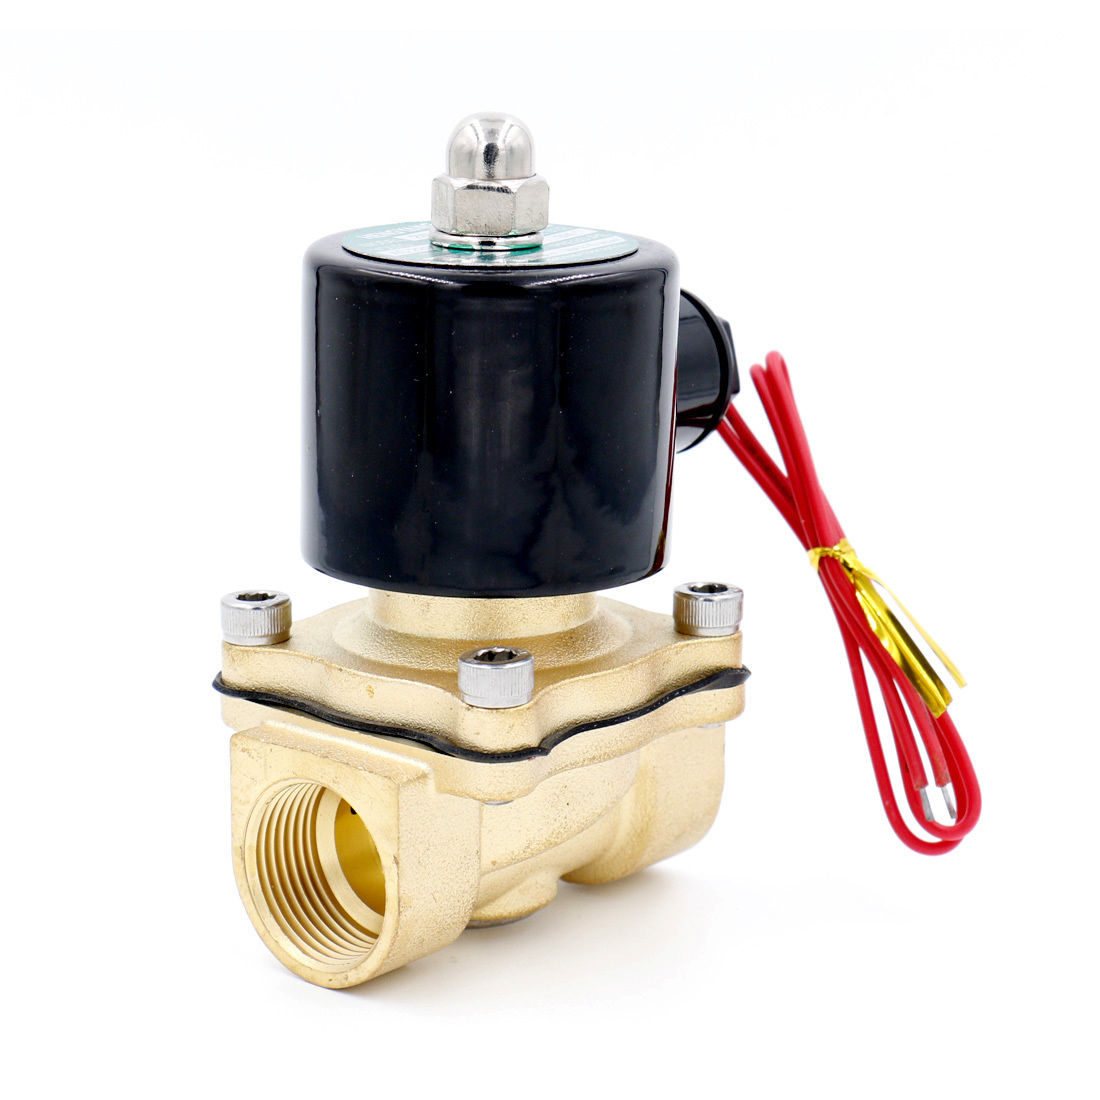 Brass Electric Solenoid Valve 2W-200-20 3/4 Inch NPT for Air Water Valve 110V NC globe valve 2 way nc 1 1 2 in f npt